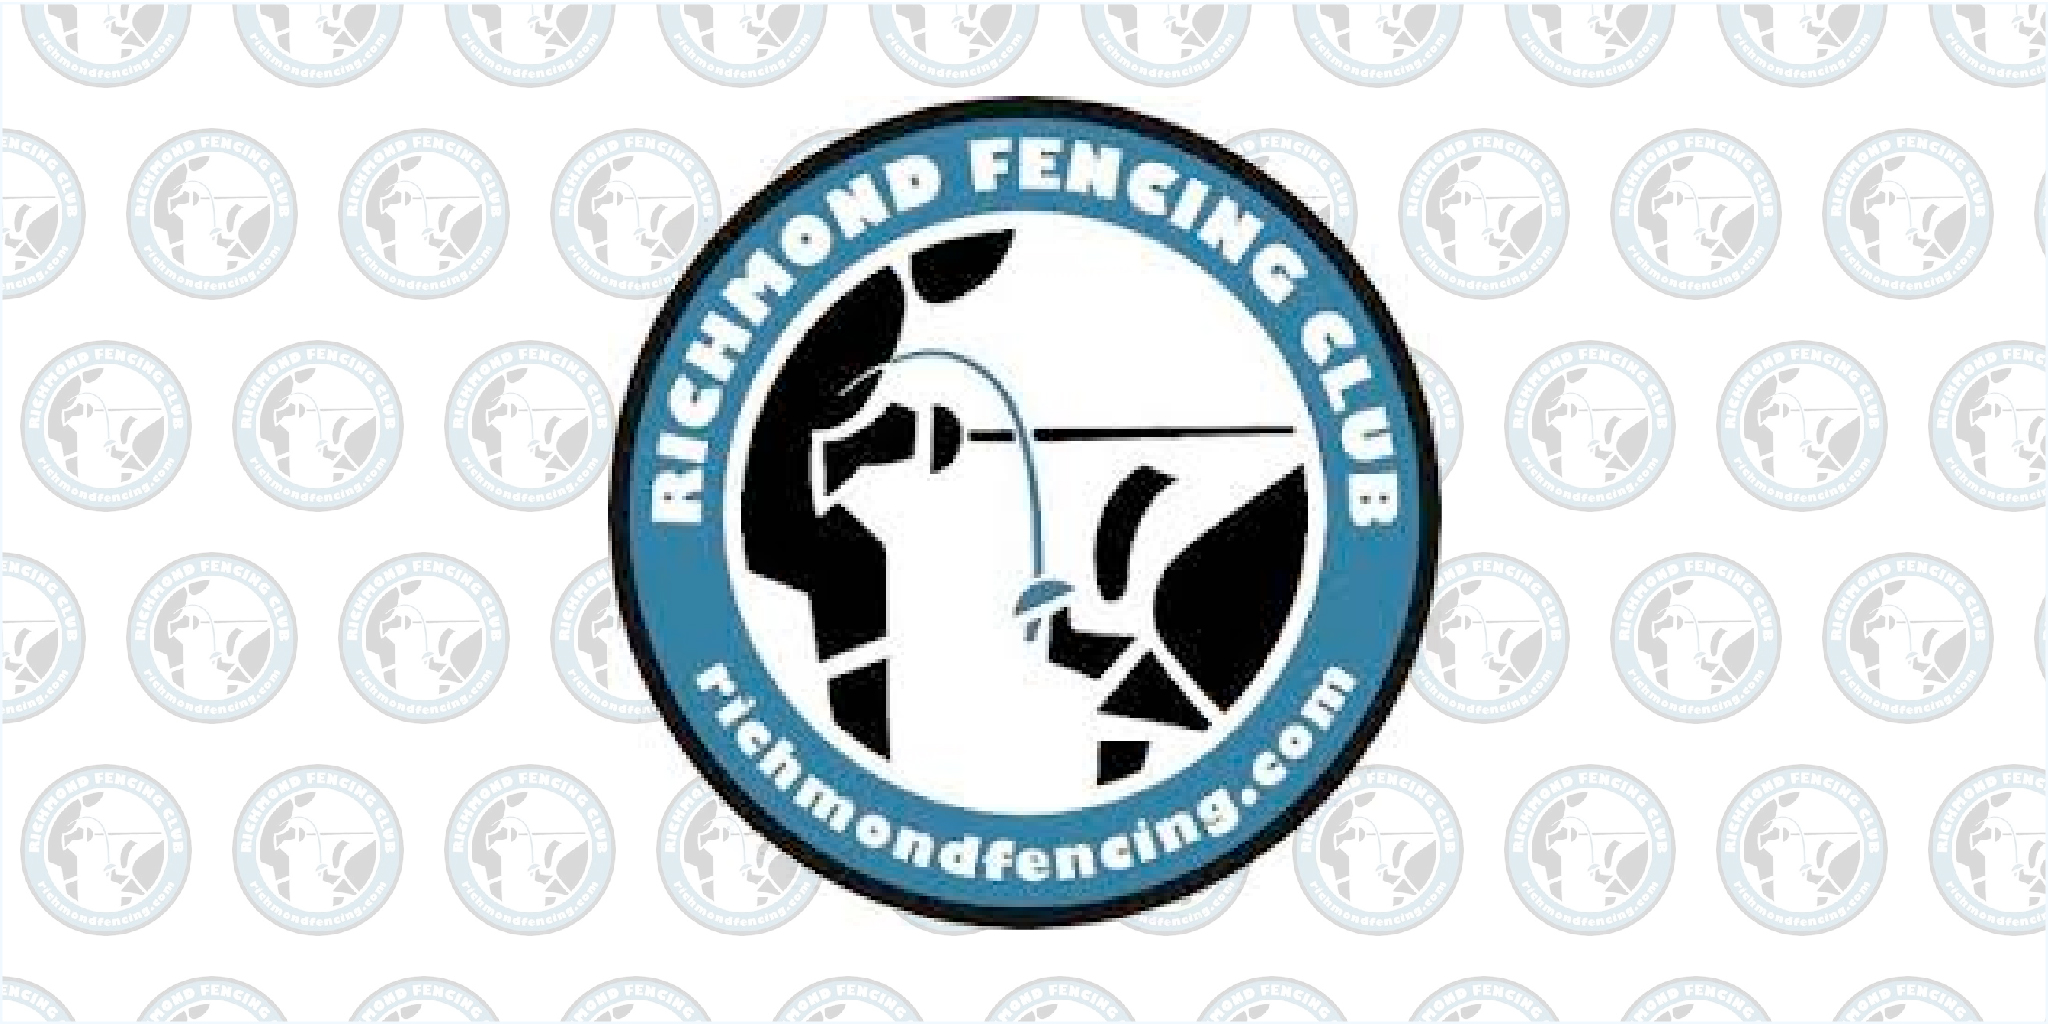 Tune Up Open Tidewater Fencing Club